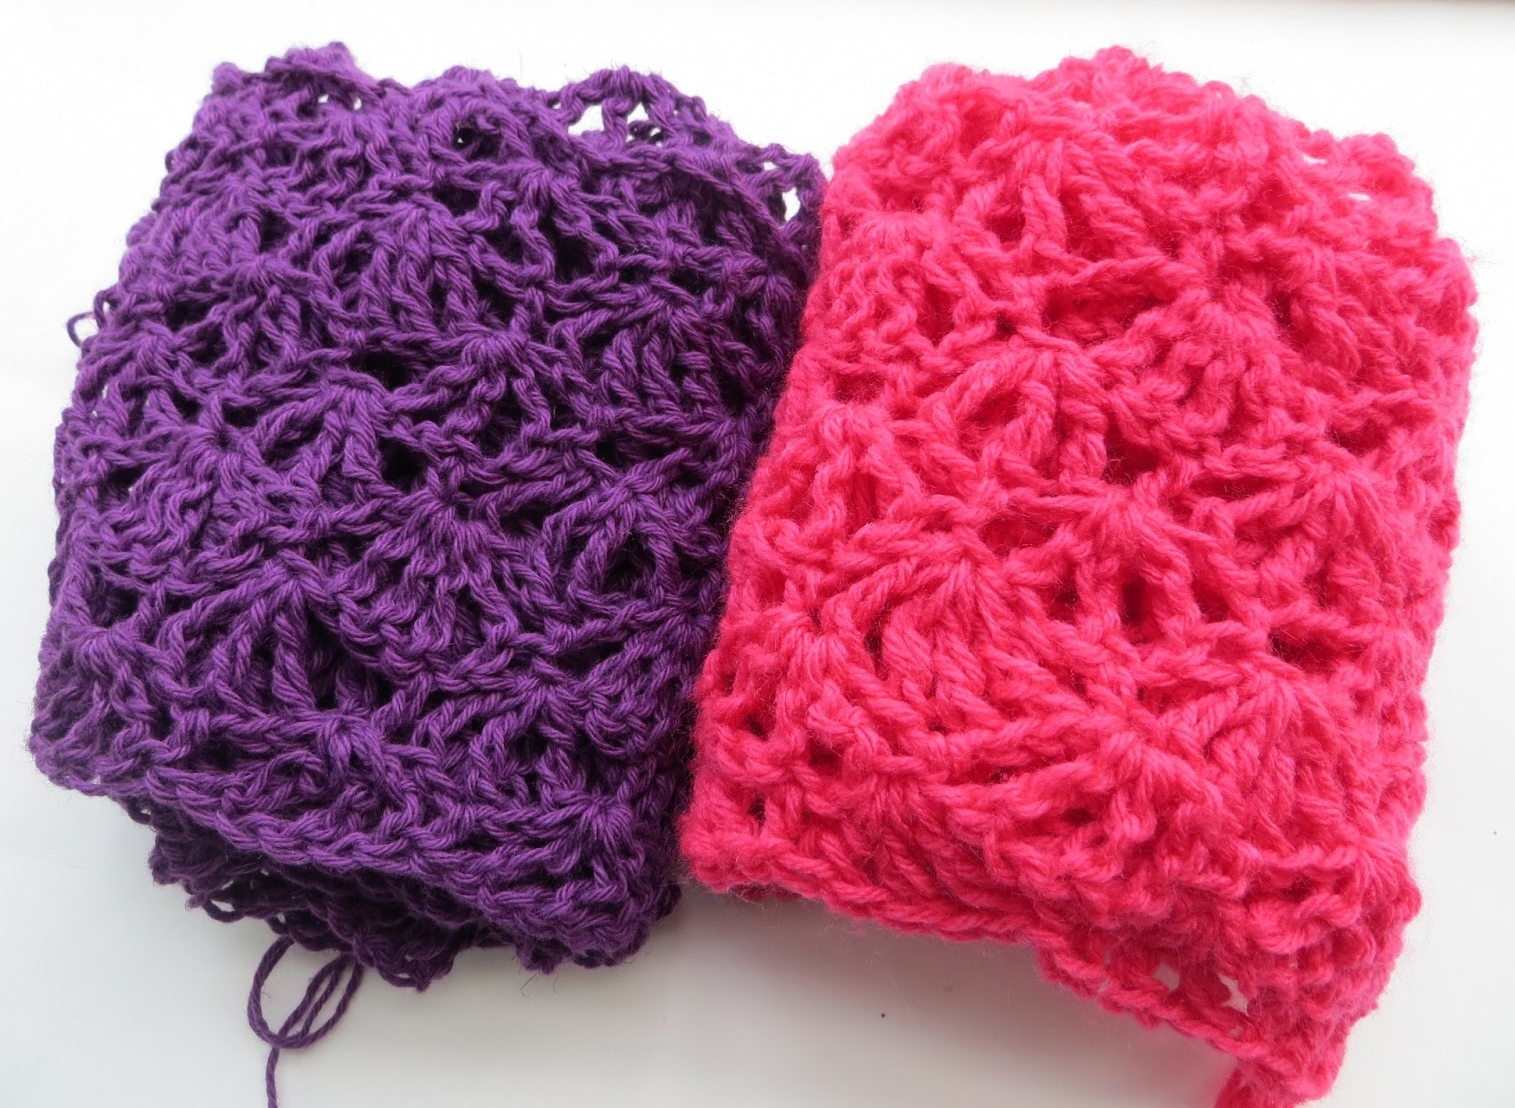 Crochet Patterns Images : Alana Lacy Scarf, Free Crochet Pattern